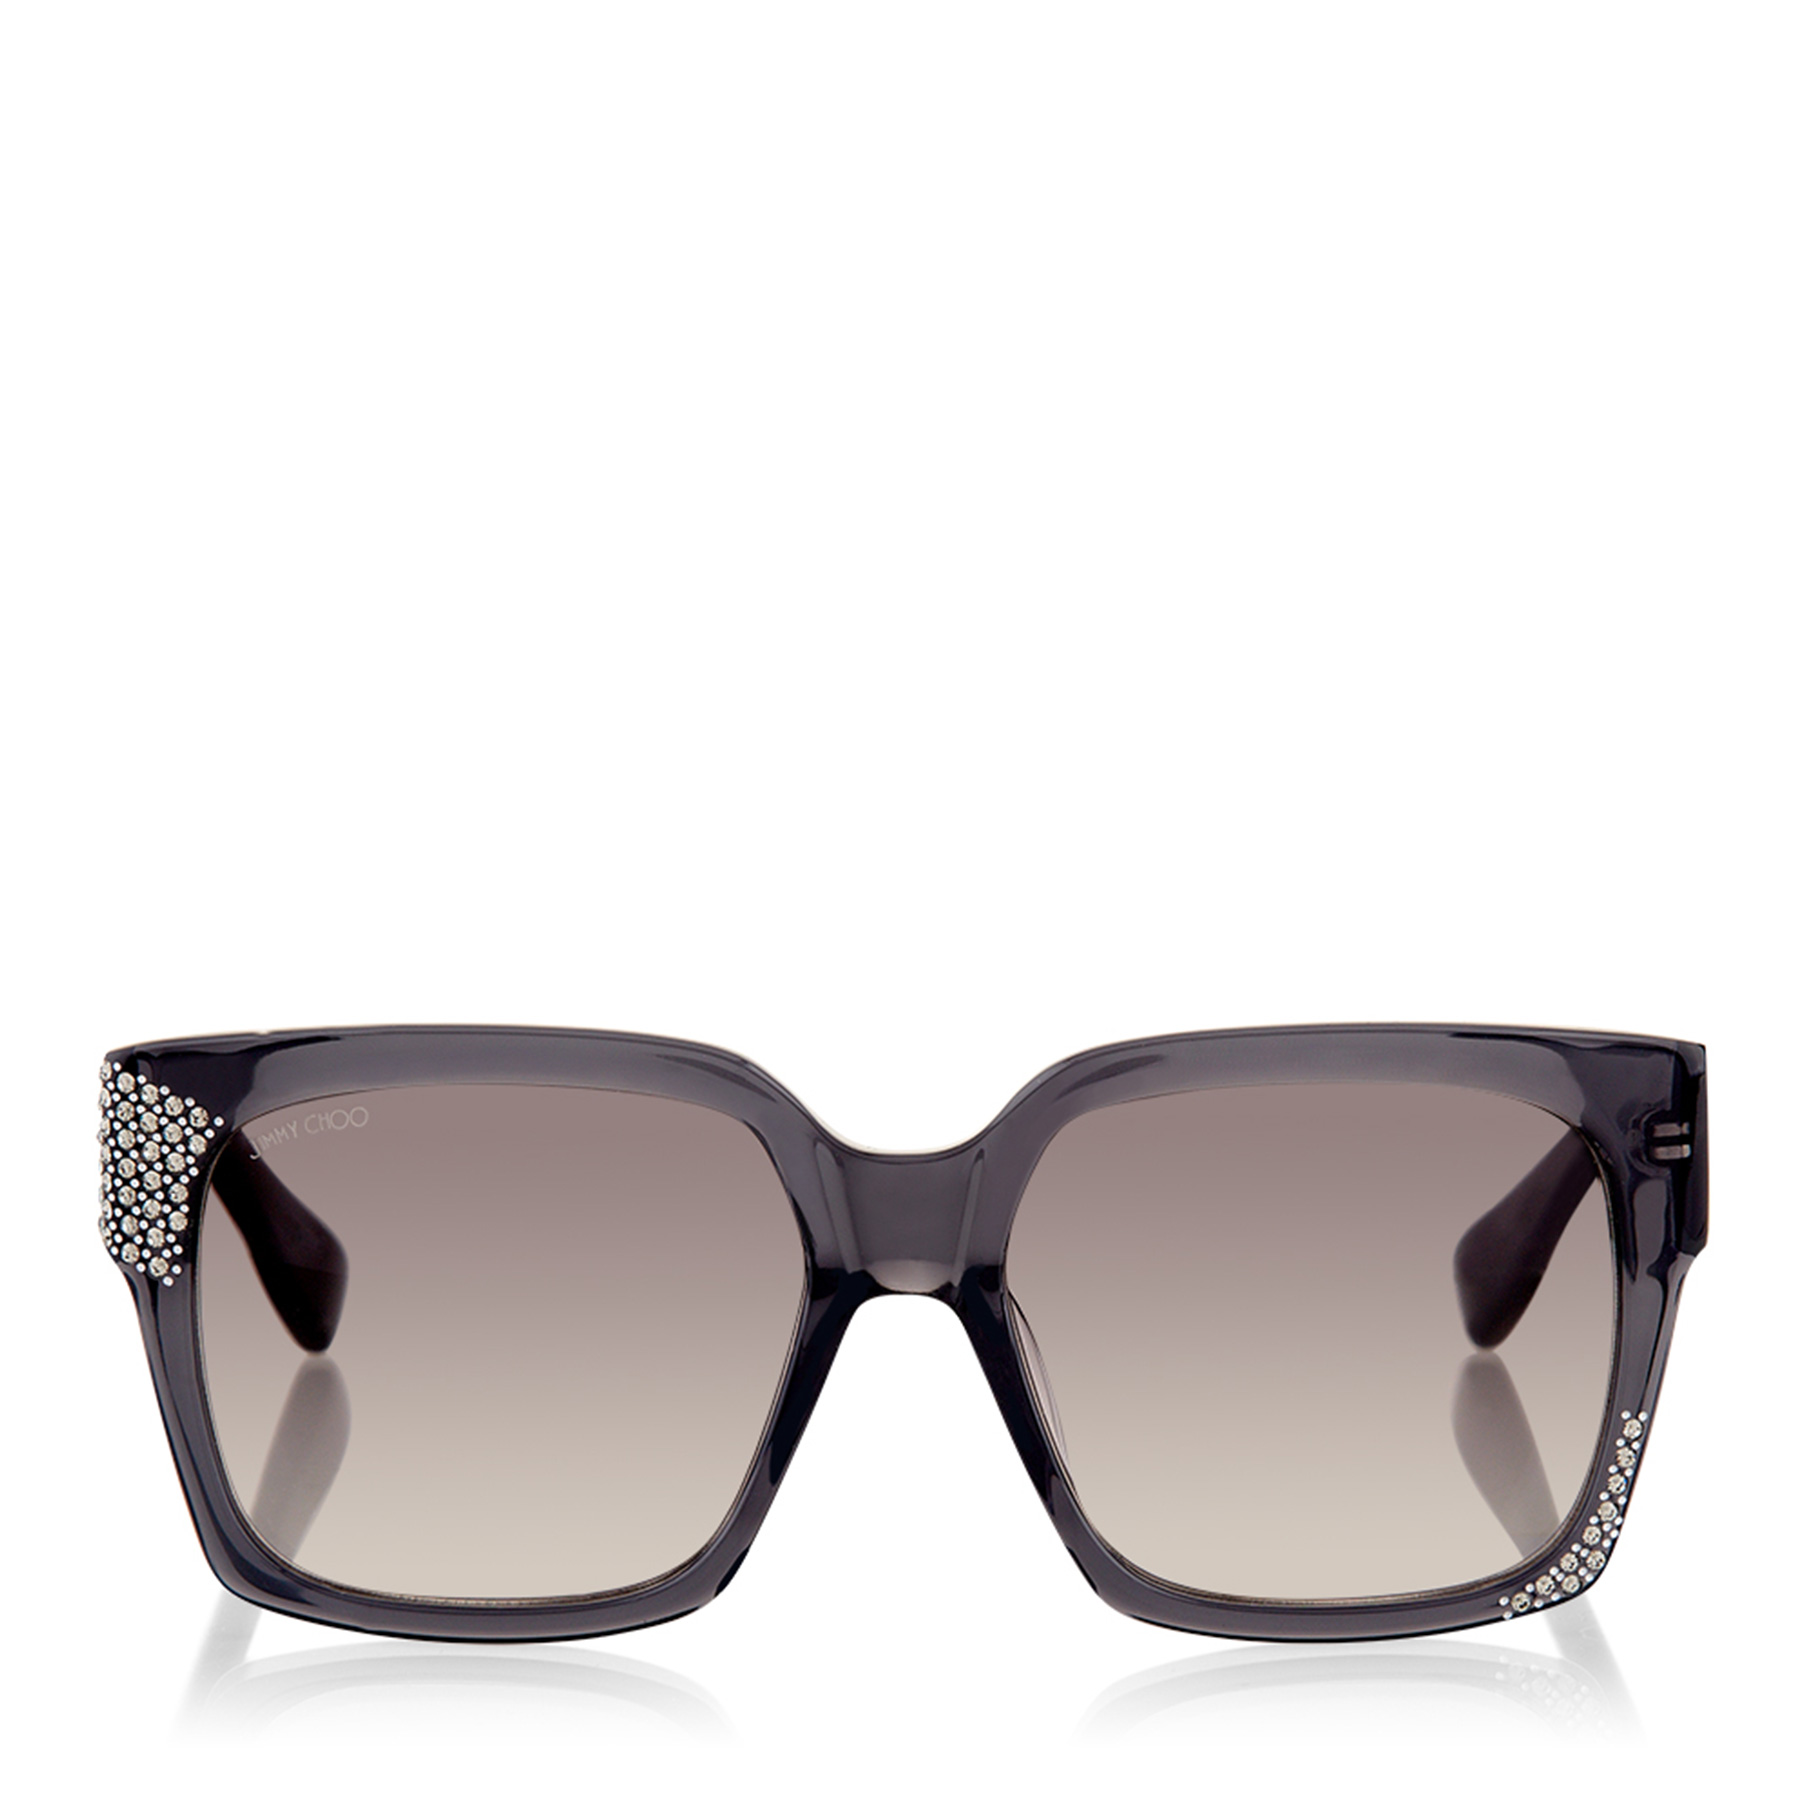 JEN Transparent Grey Sunglasses with Crystals